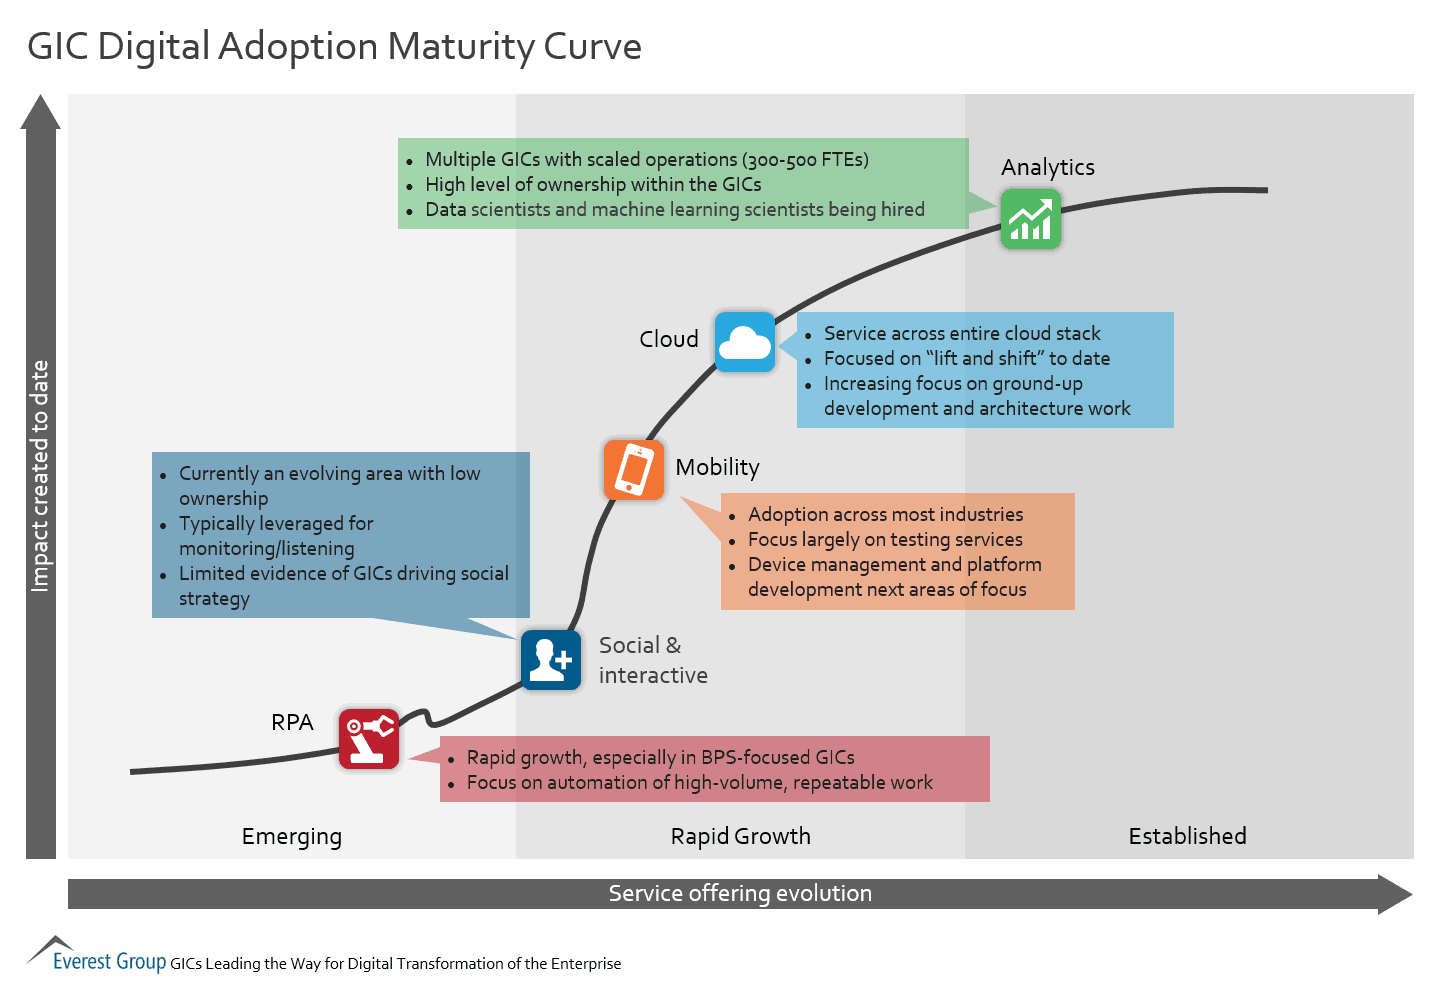 GIC Digital Adoption Maturity Curve | Market Insights ...